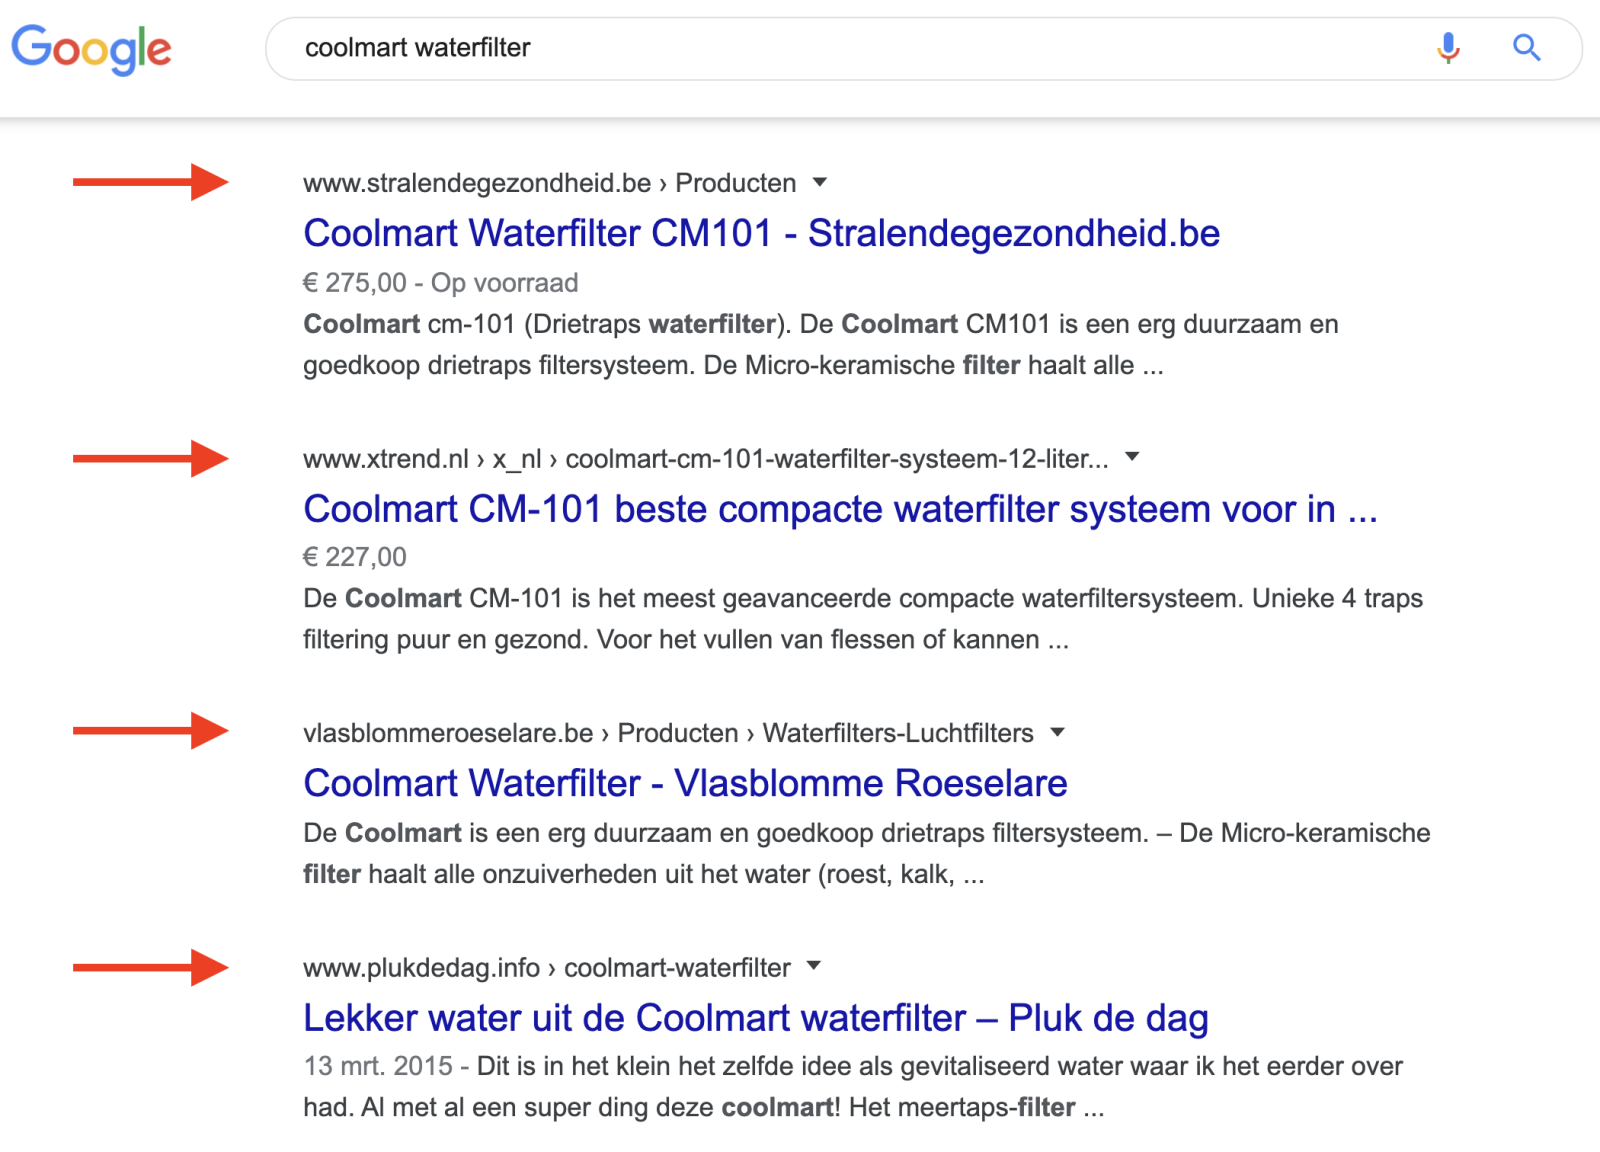 E-commerce SEO - coolmart waterfilter